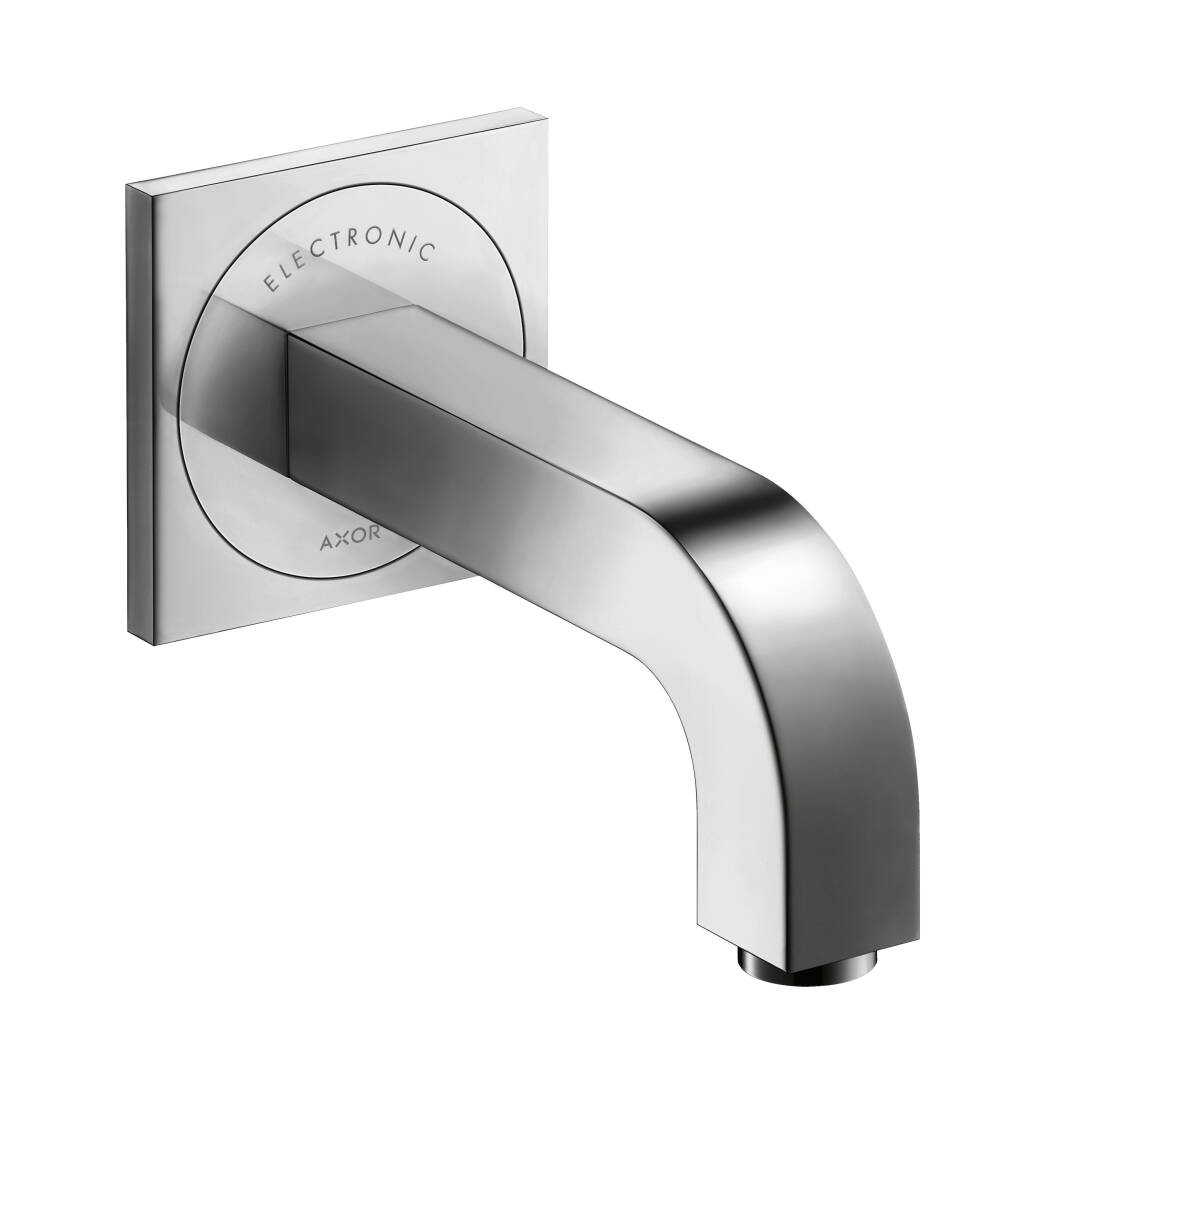 Electronic basin mixer for concealed installation wall-mounted with spout 161 mm, Polished Chrome, 39117020